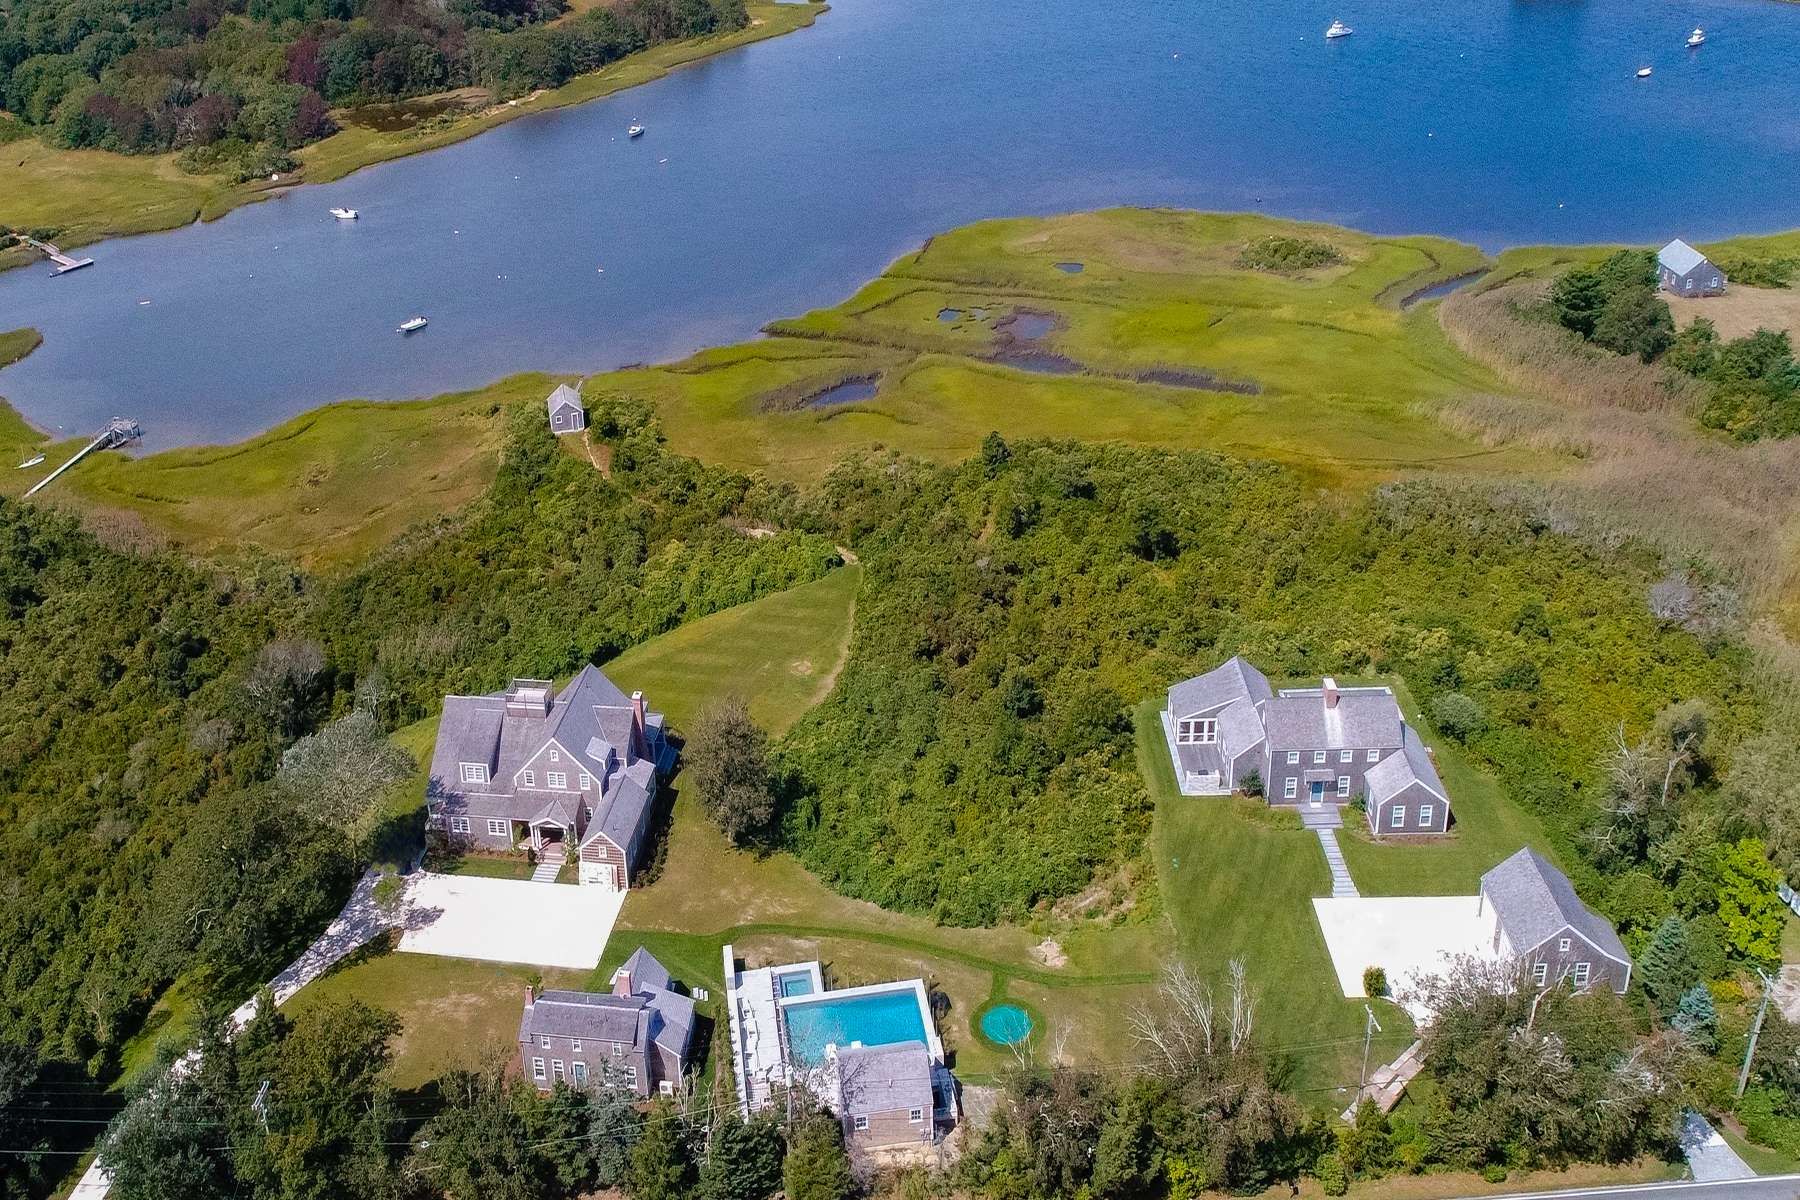 Single Family Homes for Active at Magnificent Nantucket Estate overlooking Polpis Harbor and Nantucket Harbor 248 & 250 Polpis Road Nantucket, Massachusetts 02554 United States